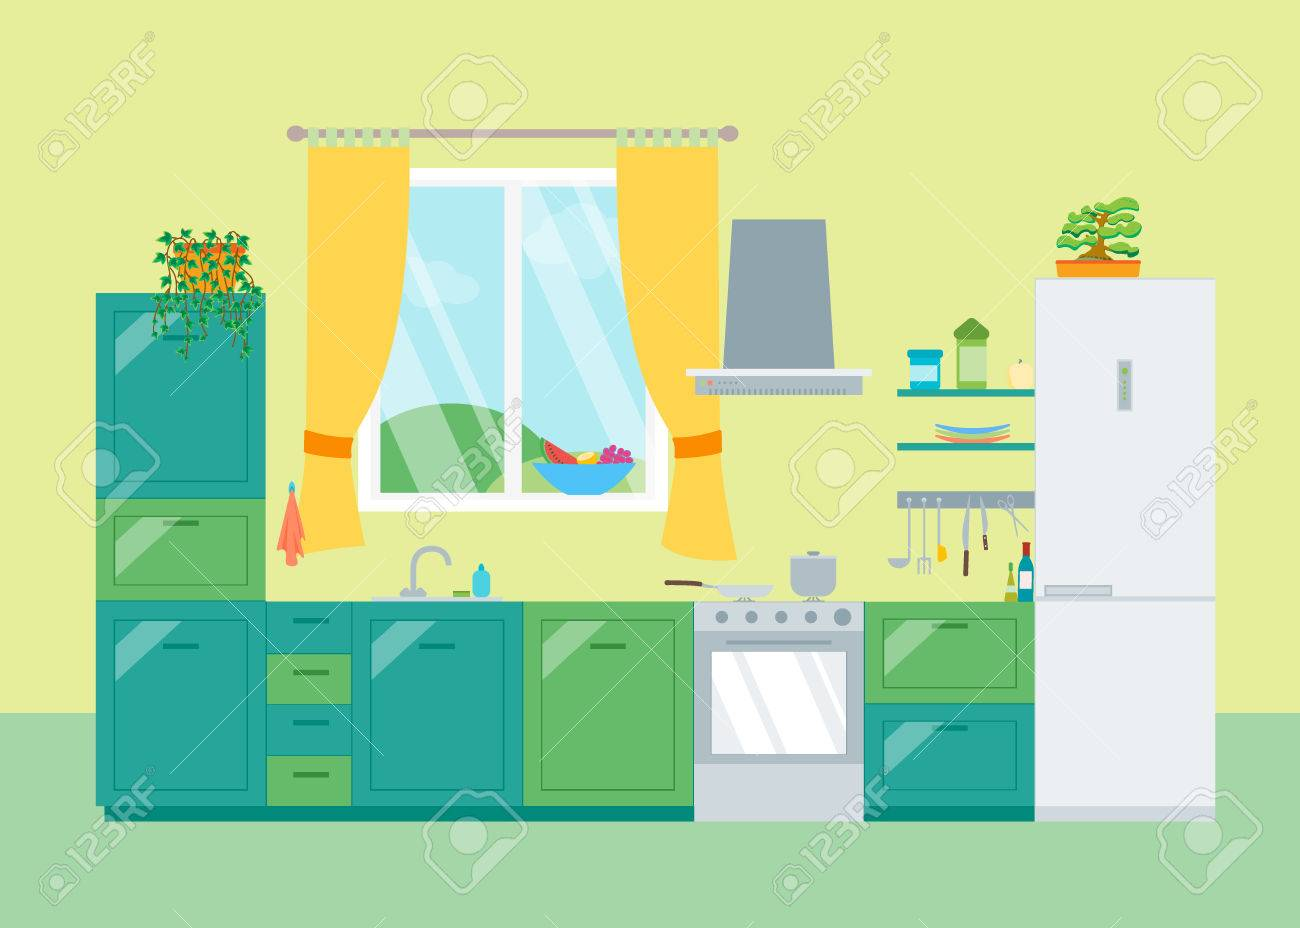 Cartoon kitchen with cabinets and window vector art illustration - Interior Classic Kitchen With Furniture And Window Flat Design Style Vector Illustration Stock Vector